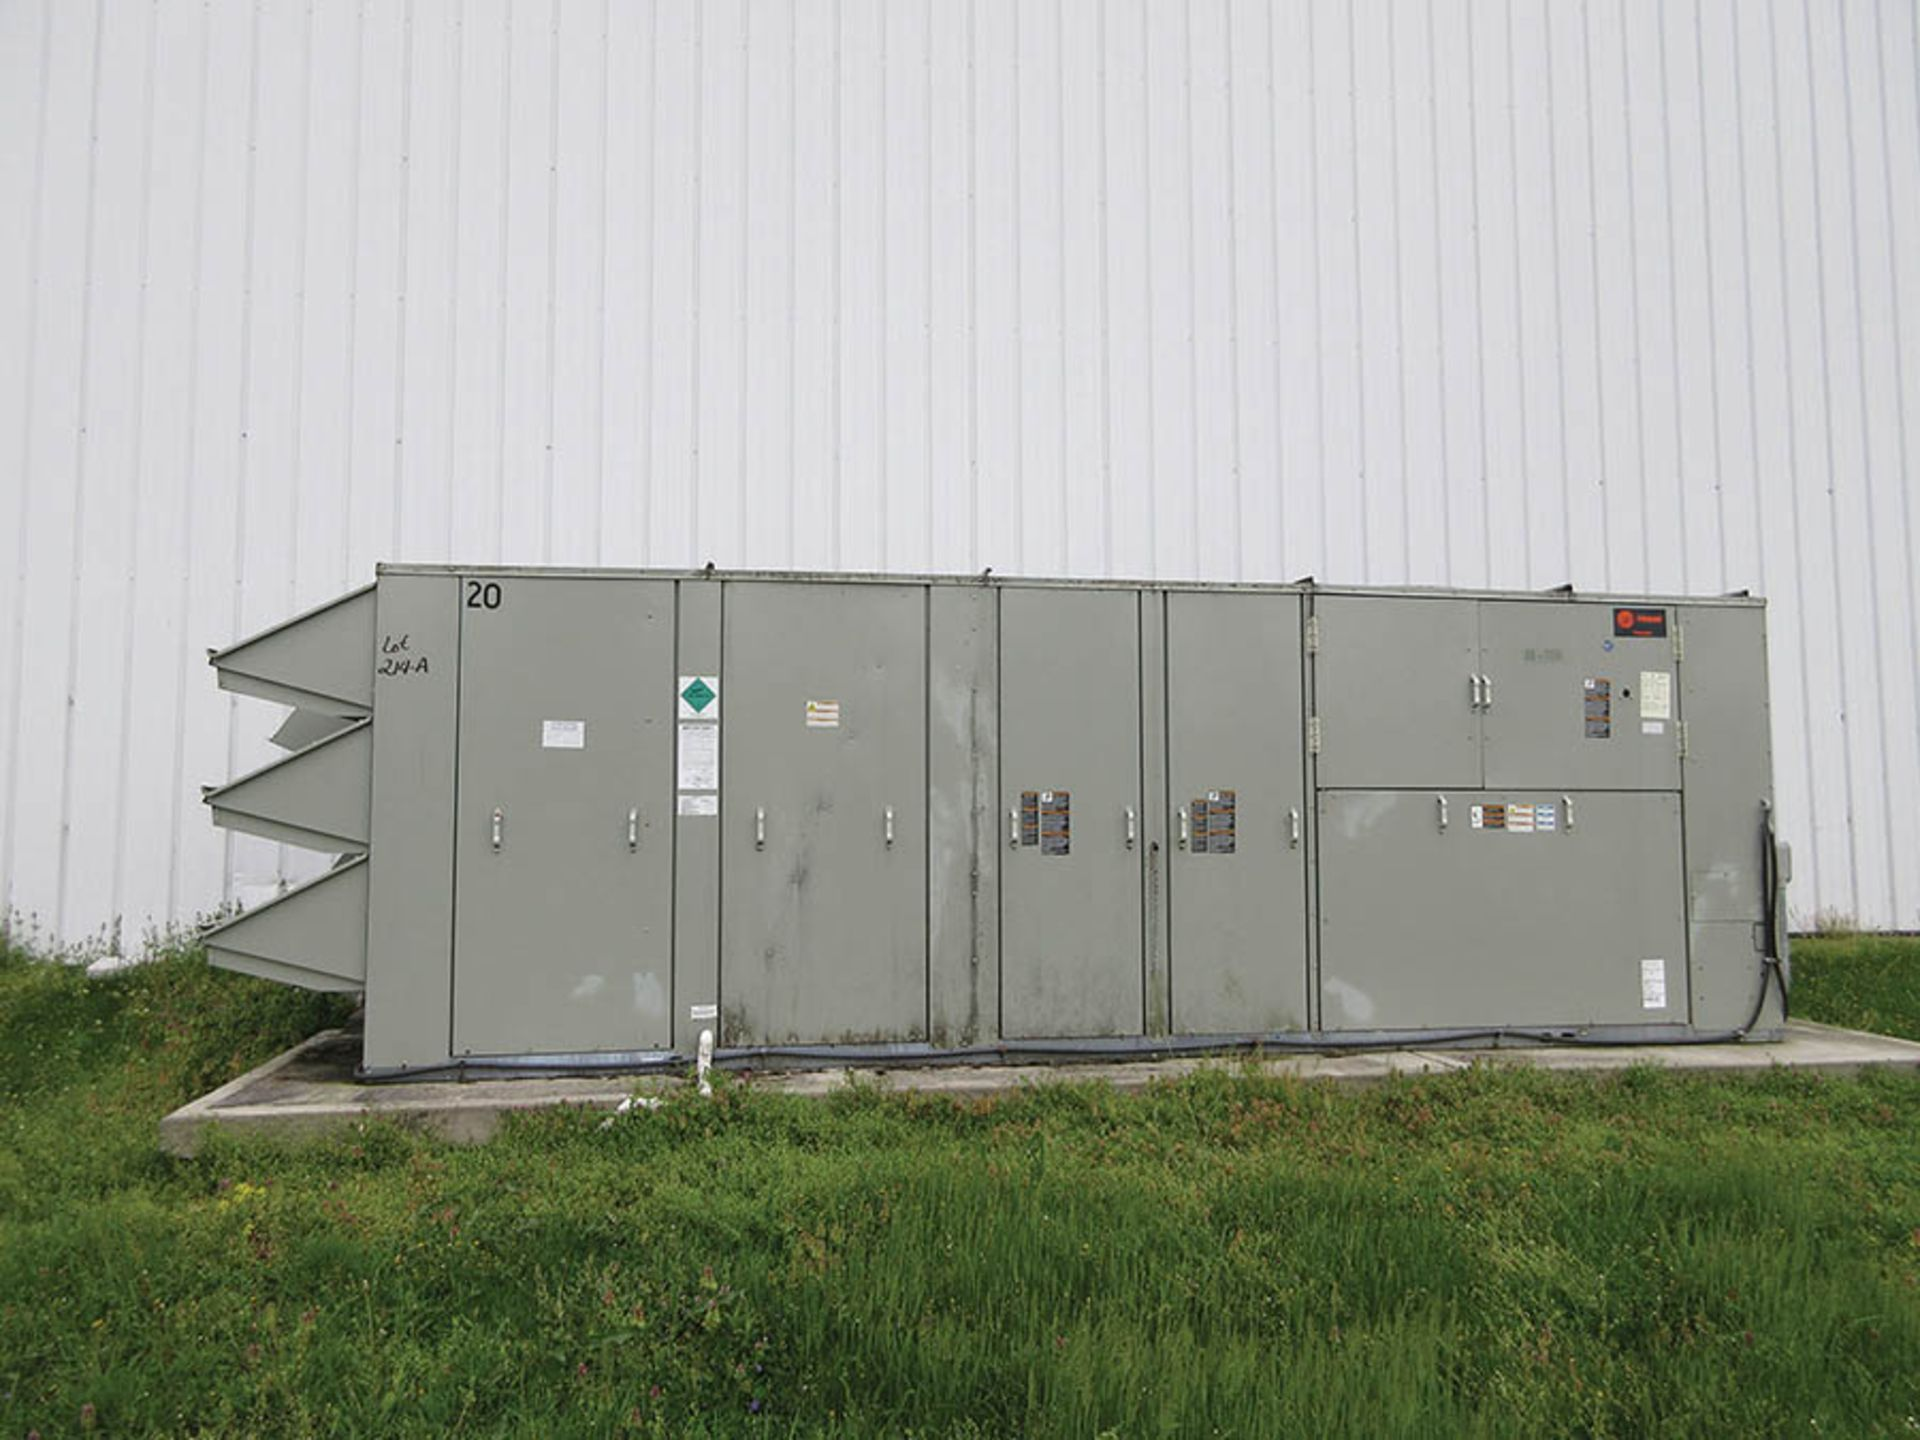 Lot 214A - 2013 TRANE SELF-CONTAINED AIR CONDITIONING SYSTEM, MODEL TCH480B40L1A3NC1000000000000000, S/N